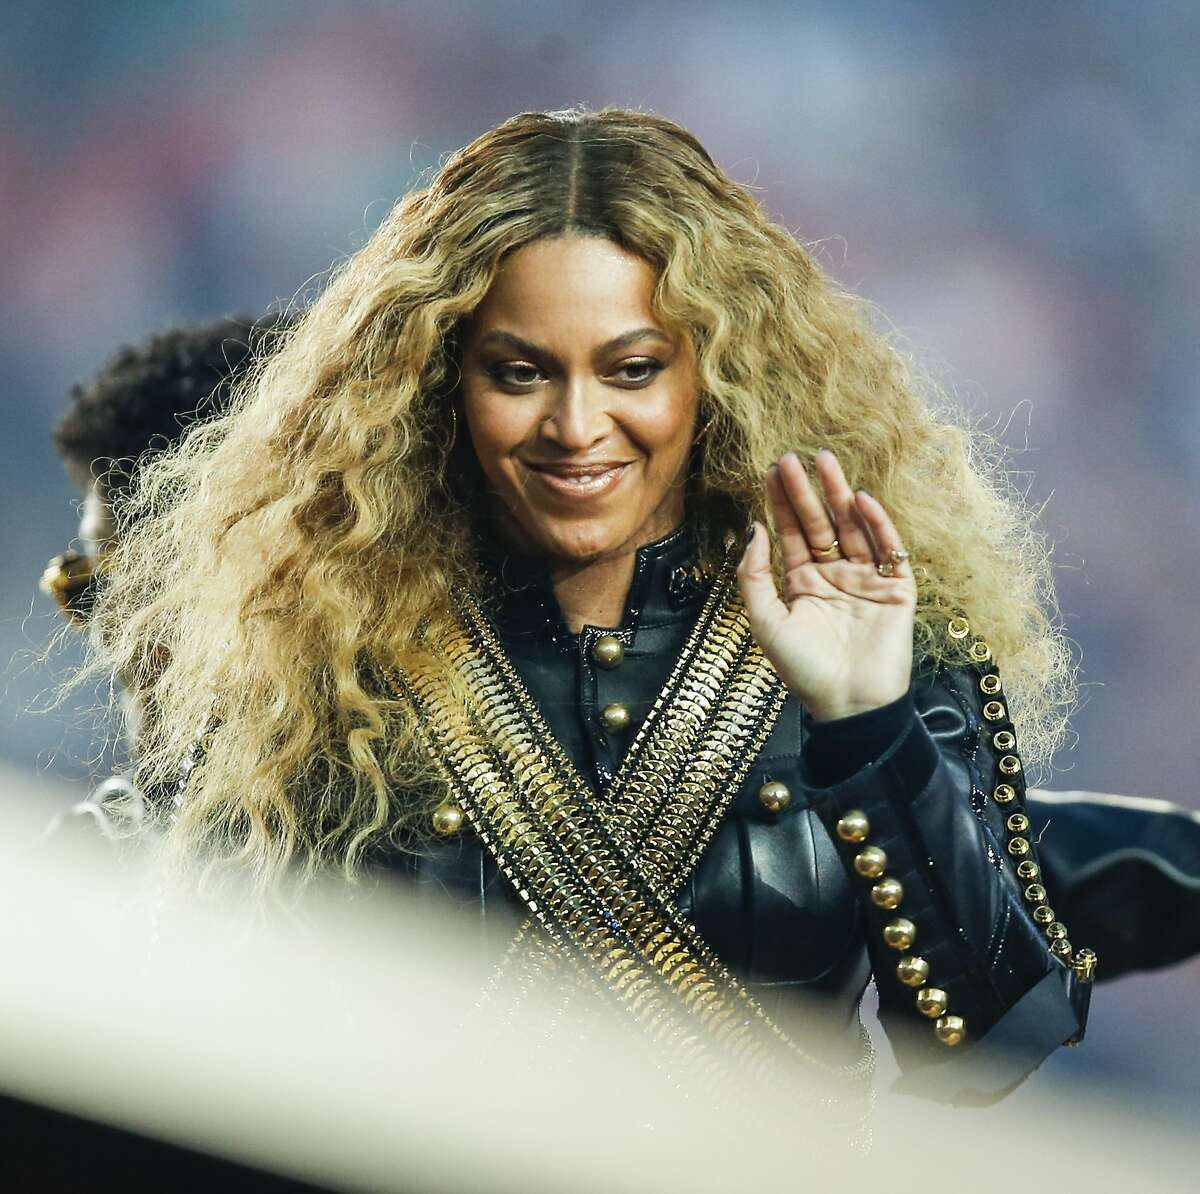 GOOD: Beyonce The Houston native stole the halftime show from alleged headliner Coldplay. One might even say she saved it.